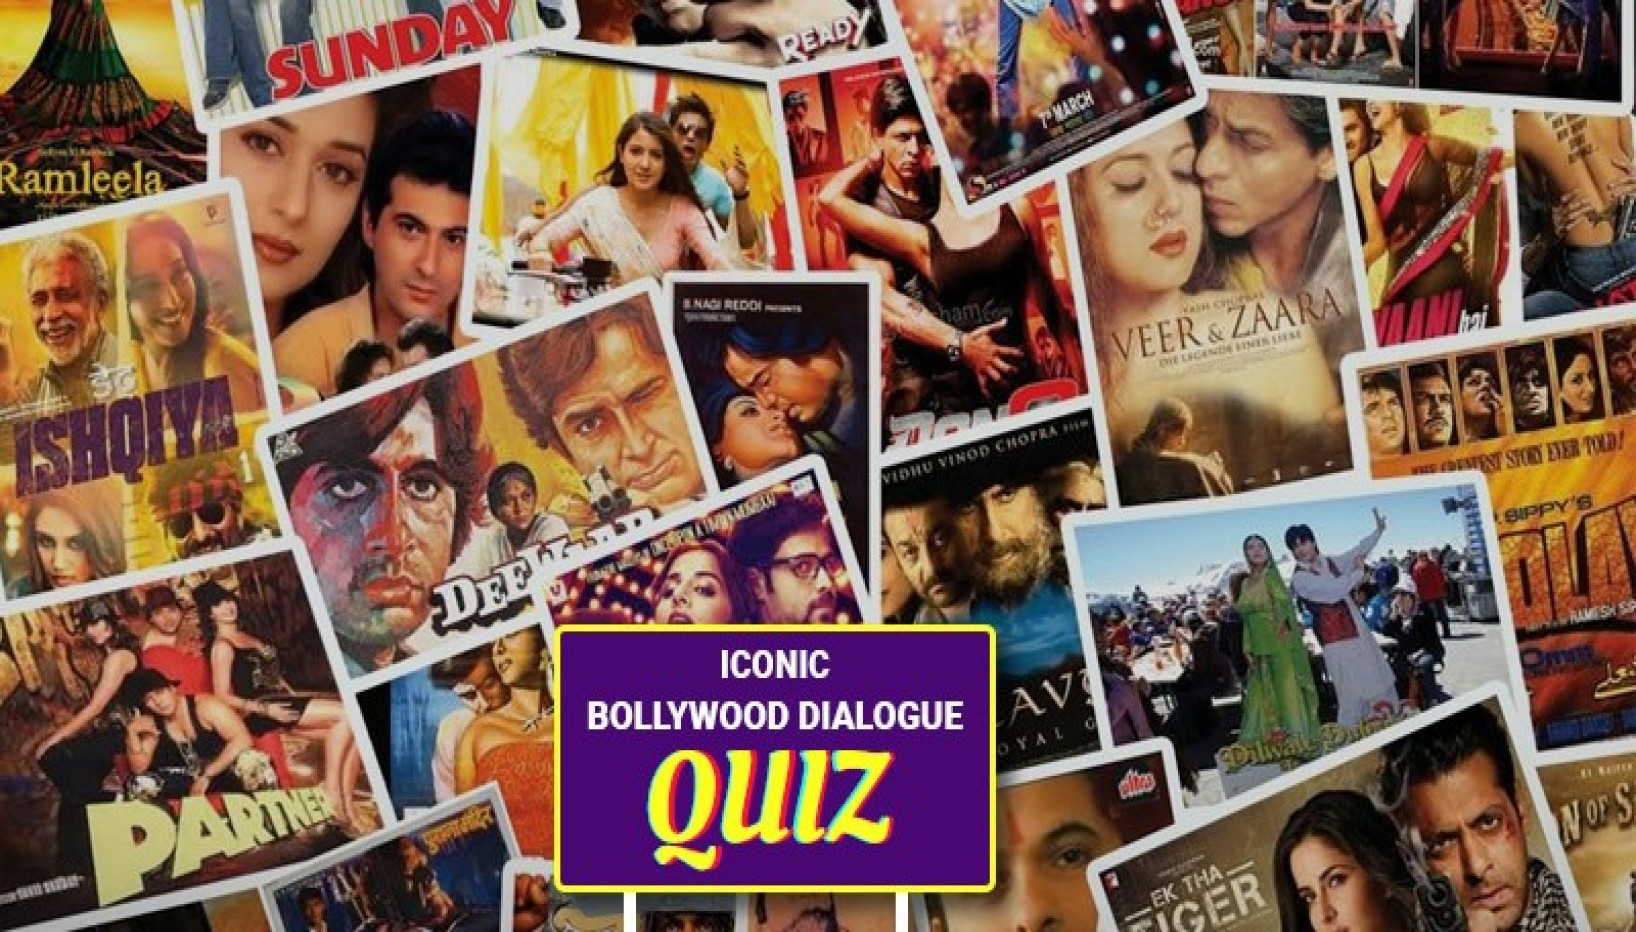 Only The Most Filmy Folks Can Correctly Match These Bollywood Dialogues With Their Movies